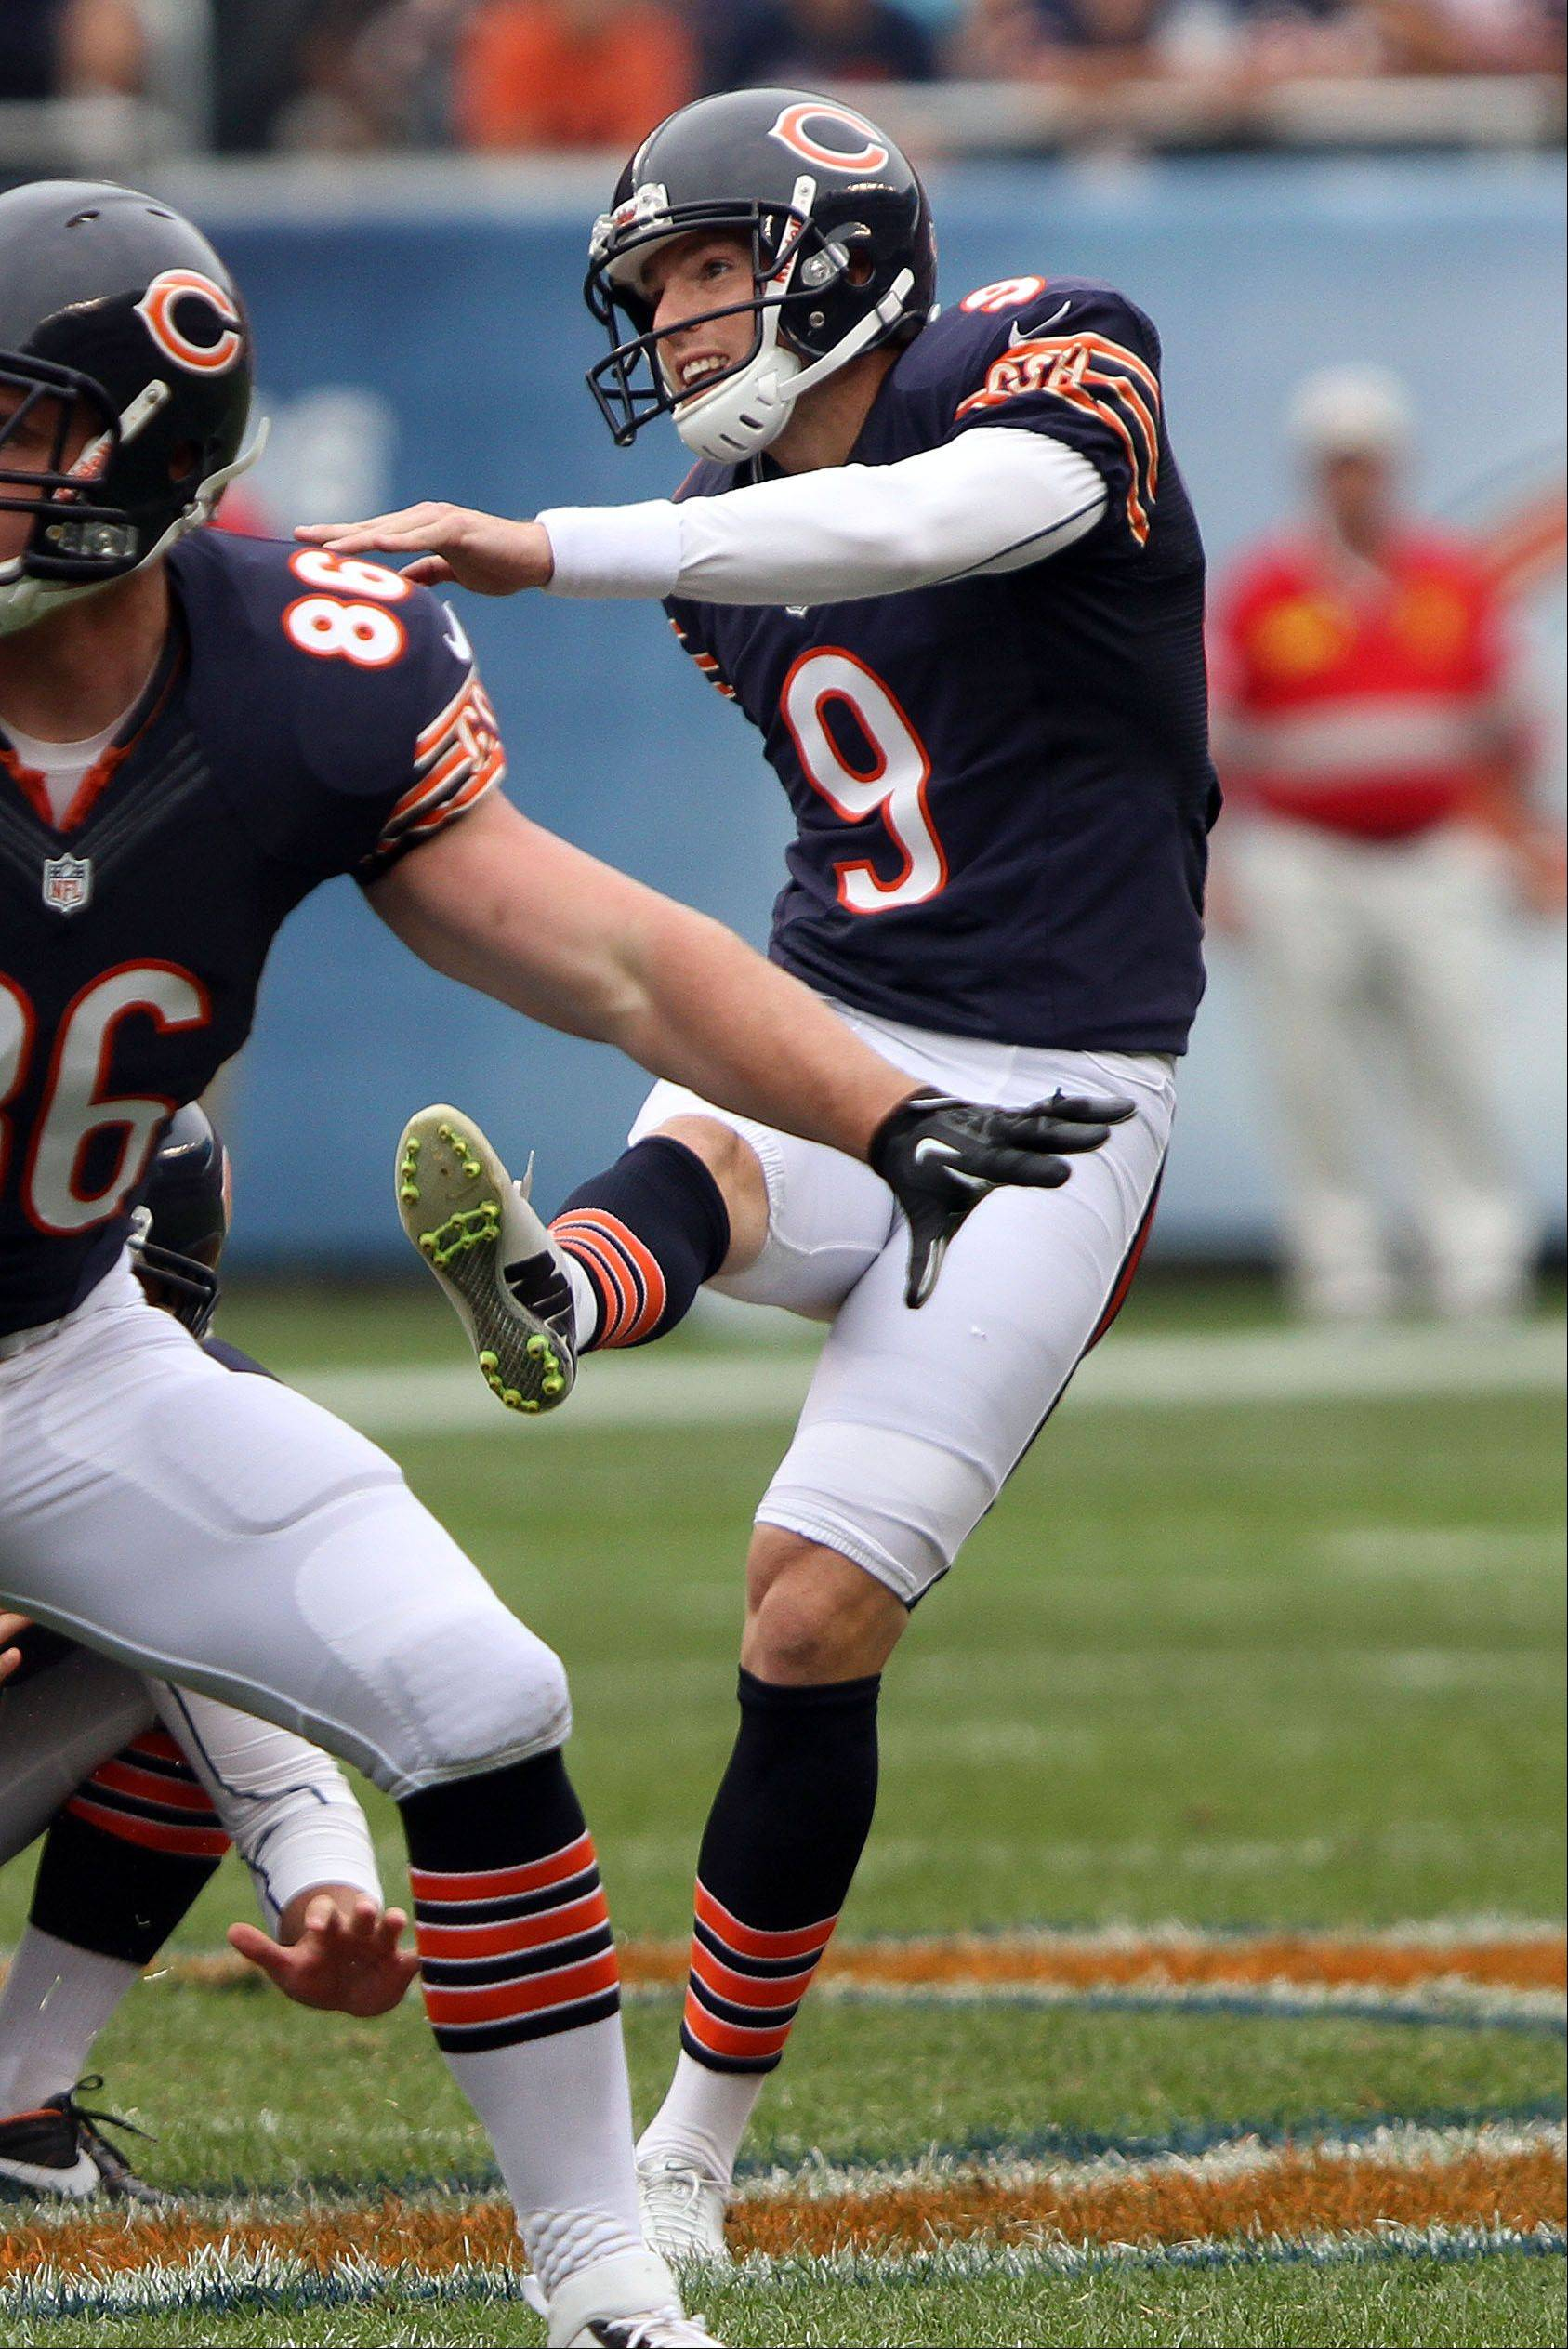 Chicago Bears kicker Robbie Gould kicks a 58 yard field goal during their opening day win over the Bengals Sunday at Soldier Field in Chicago.